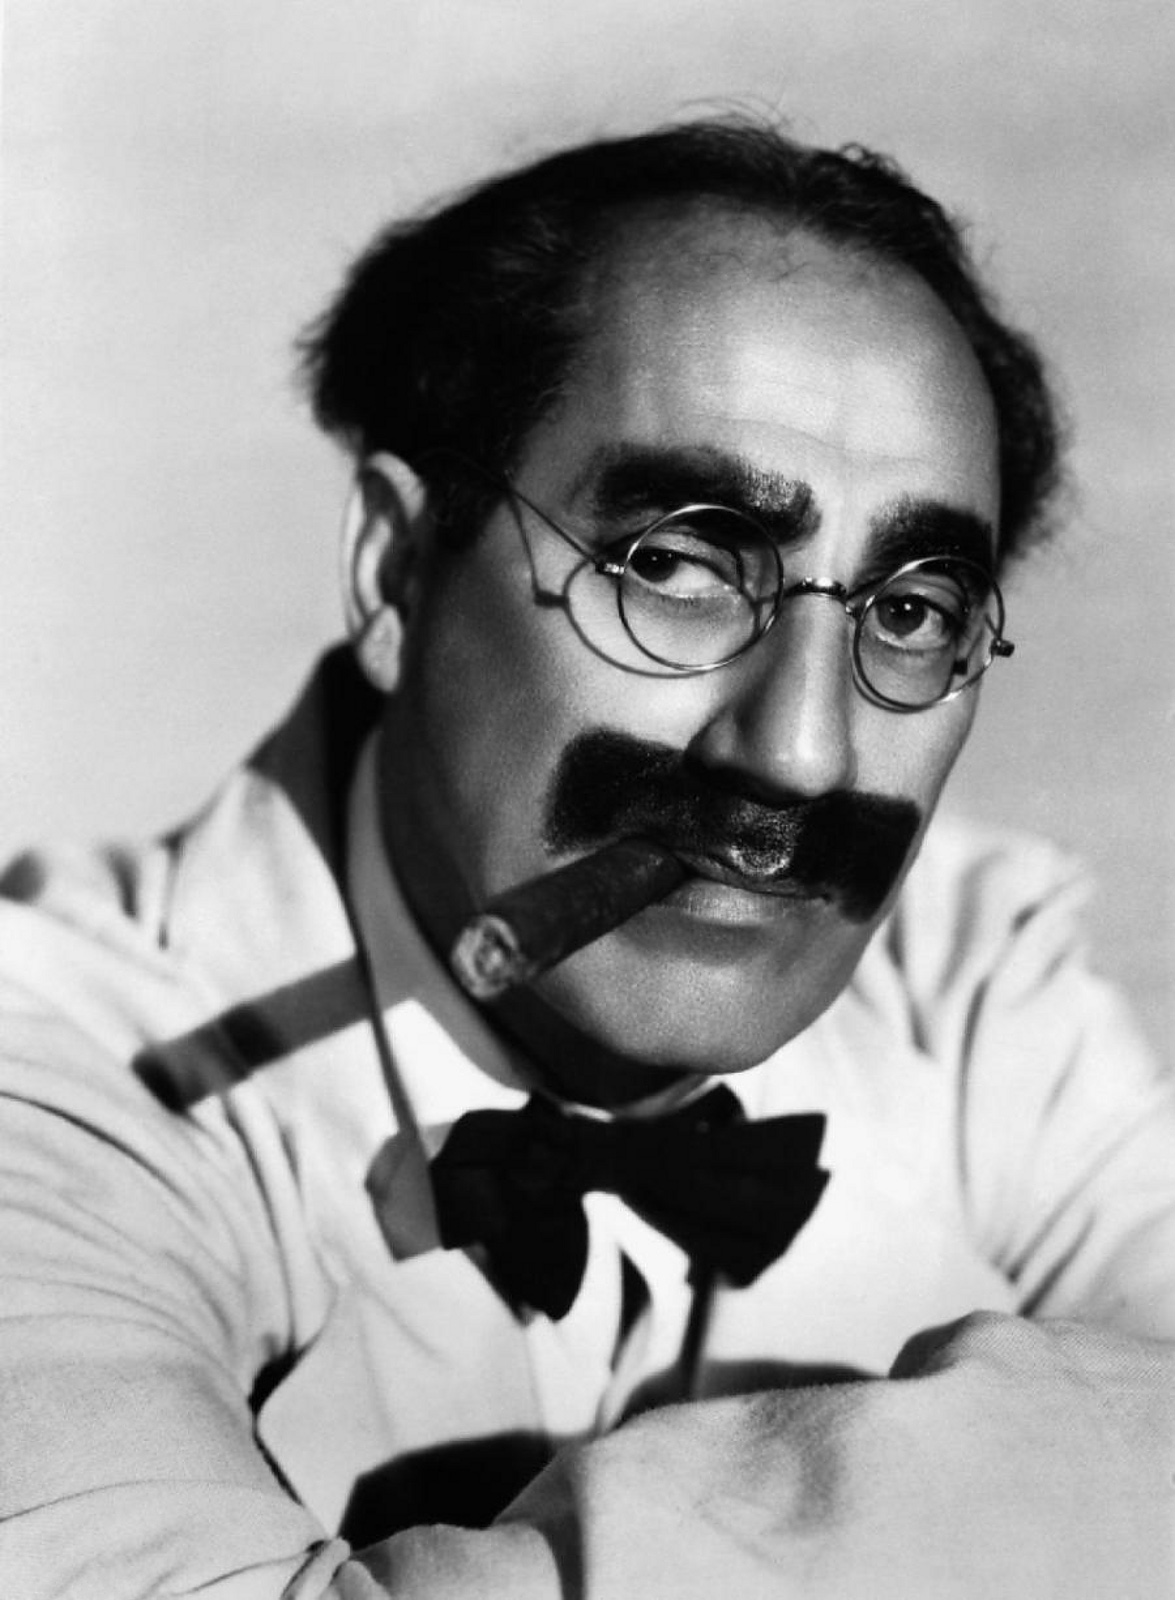 groucho marx pronouncegroucho marx arthur sheekman, groucho marx arthur sheekman reading, groucho marx quotes, groucho marx glasses, groucho marx bill cosby youtube, groucho marx club, groucho marx and charlie chaplin, groucho marx and alice cooper, groucho marx mbti, groucho marx wiki, groucho marx citati, groucho marx frasi, groucho marx arthur sheekman answer, groucho marx one liners, groucho marx cartoon, groucho marx bio, groucho marx amazon, groucho marx ielts, groucho marx pronounce, groucho marx quotations